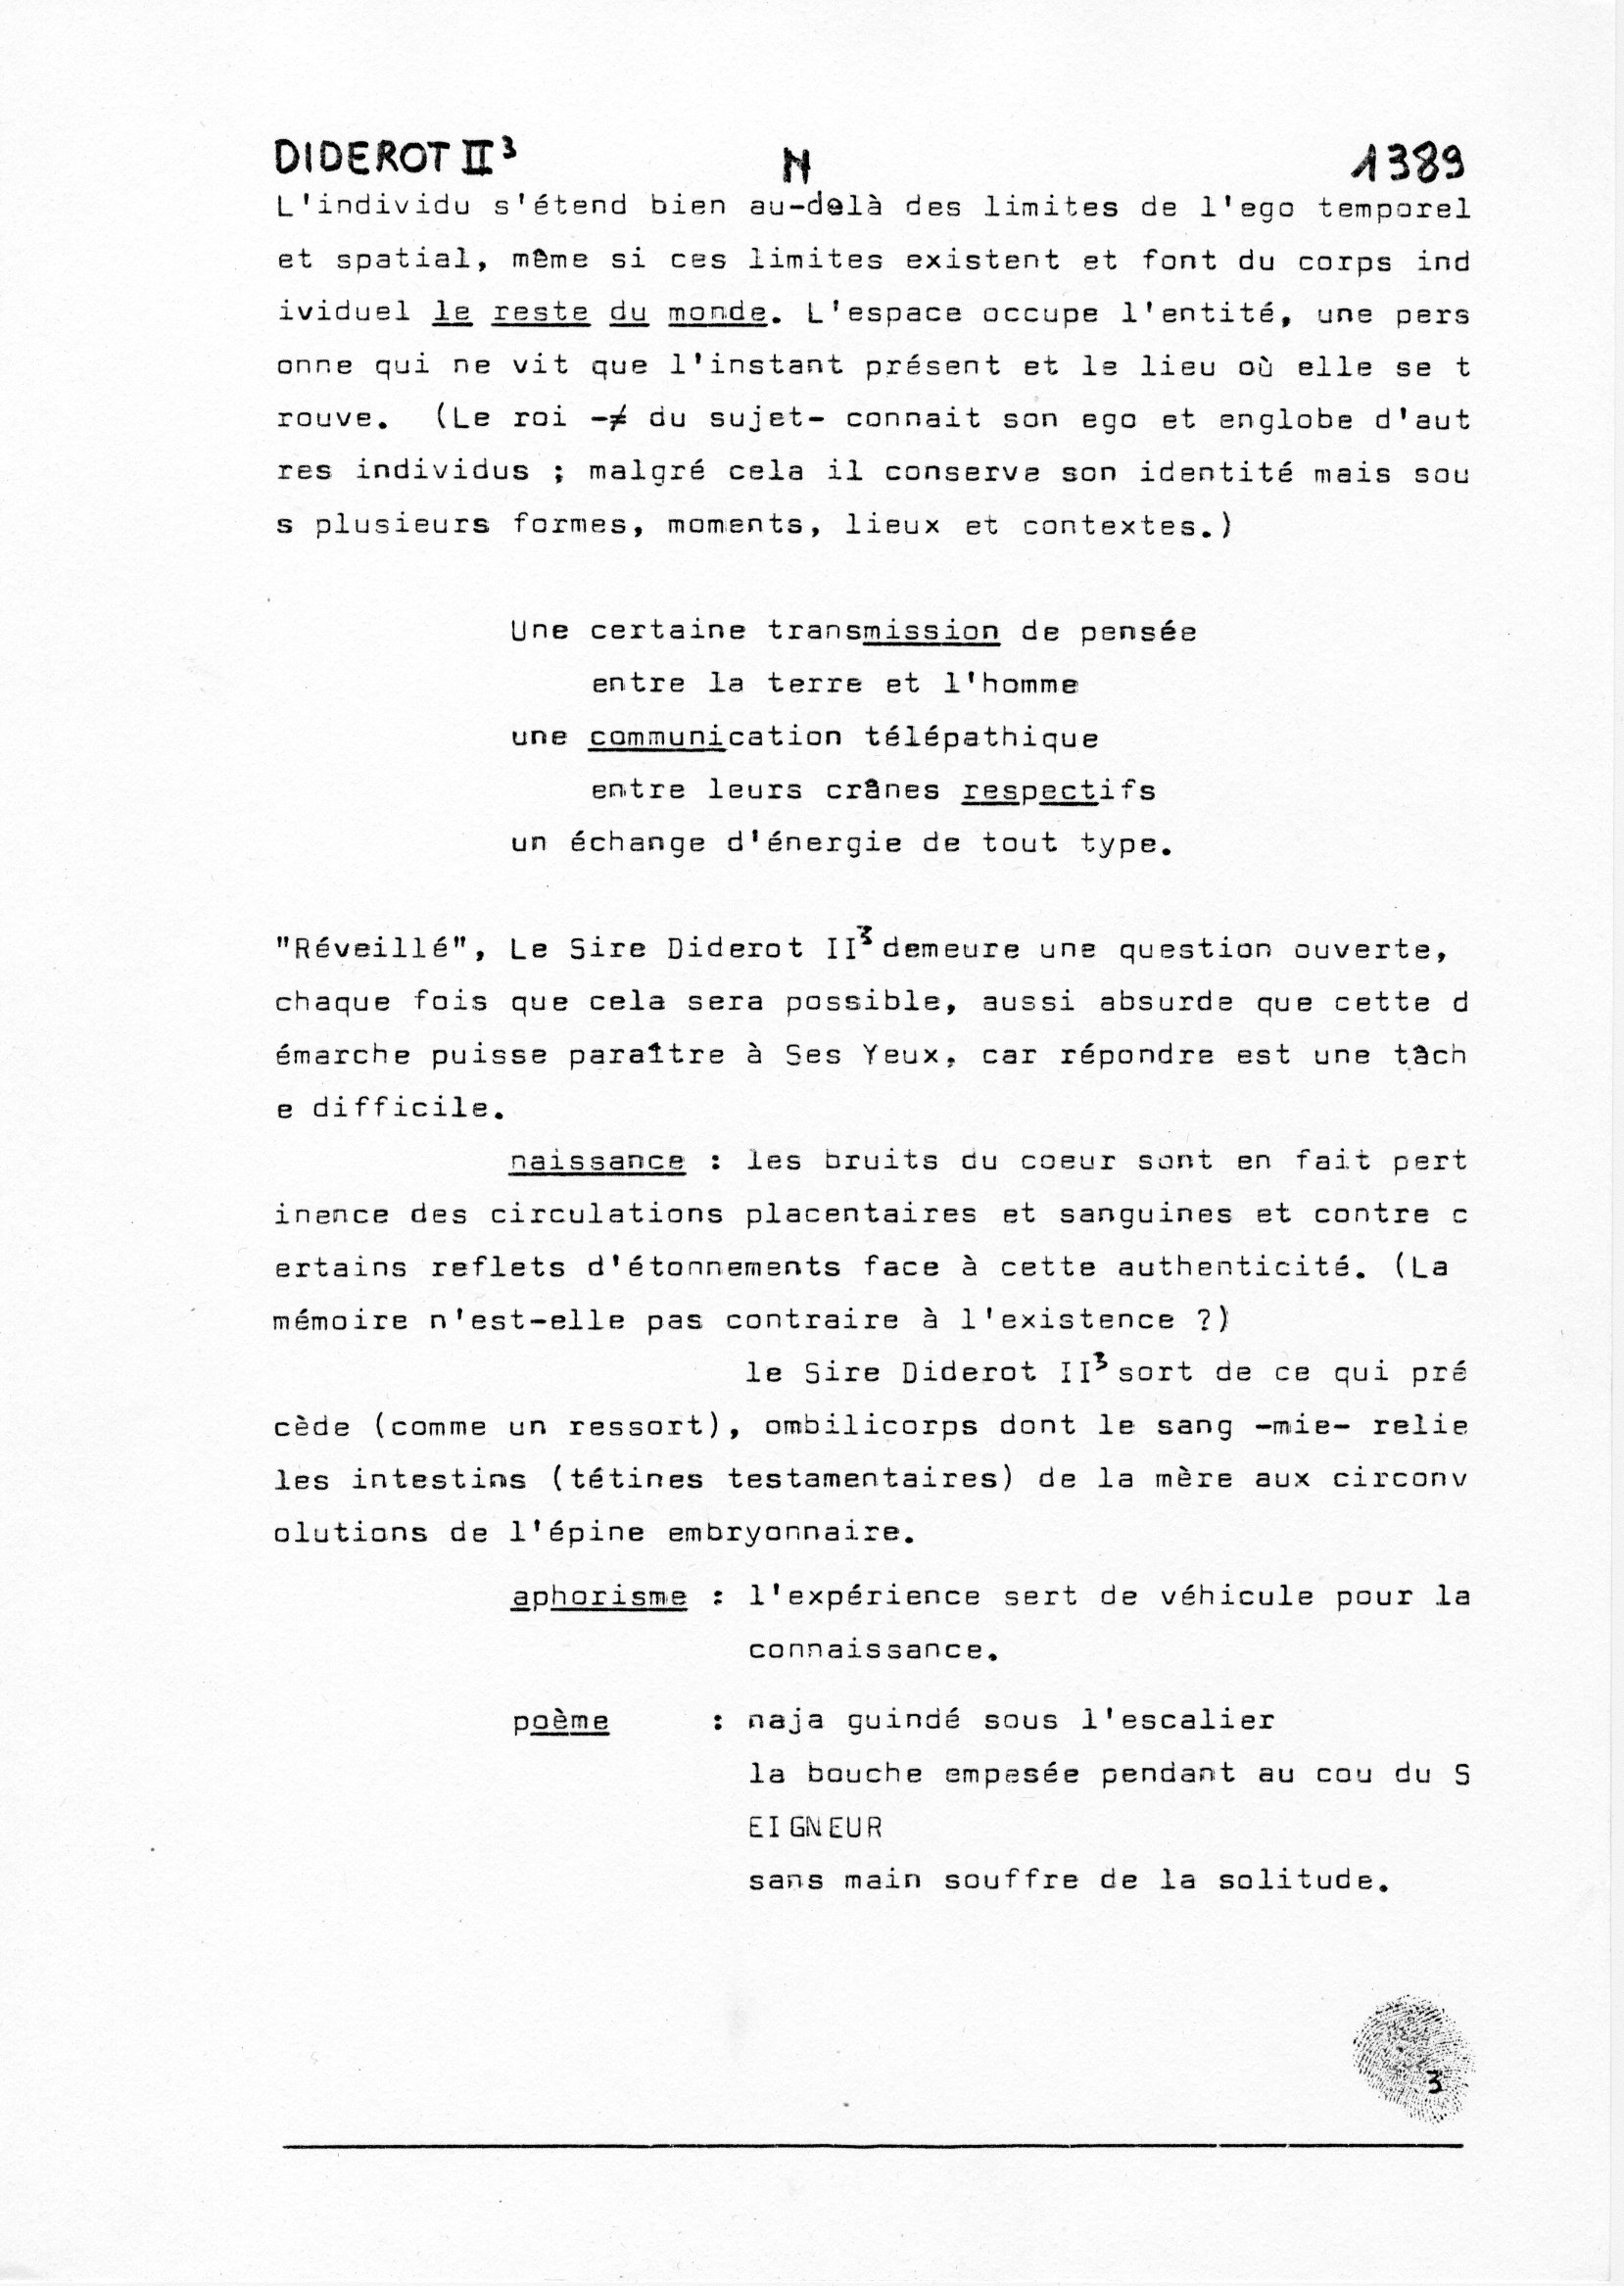 page 1389 Diderot II p3 N